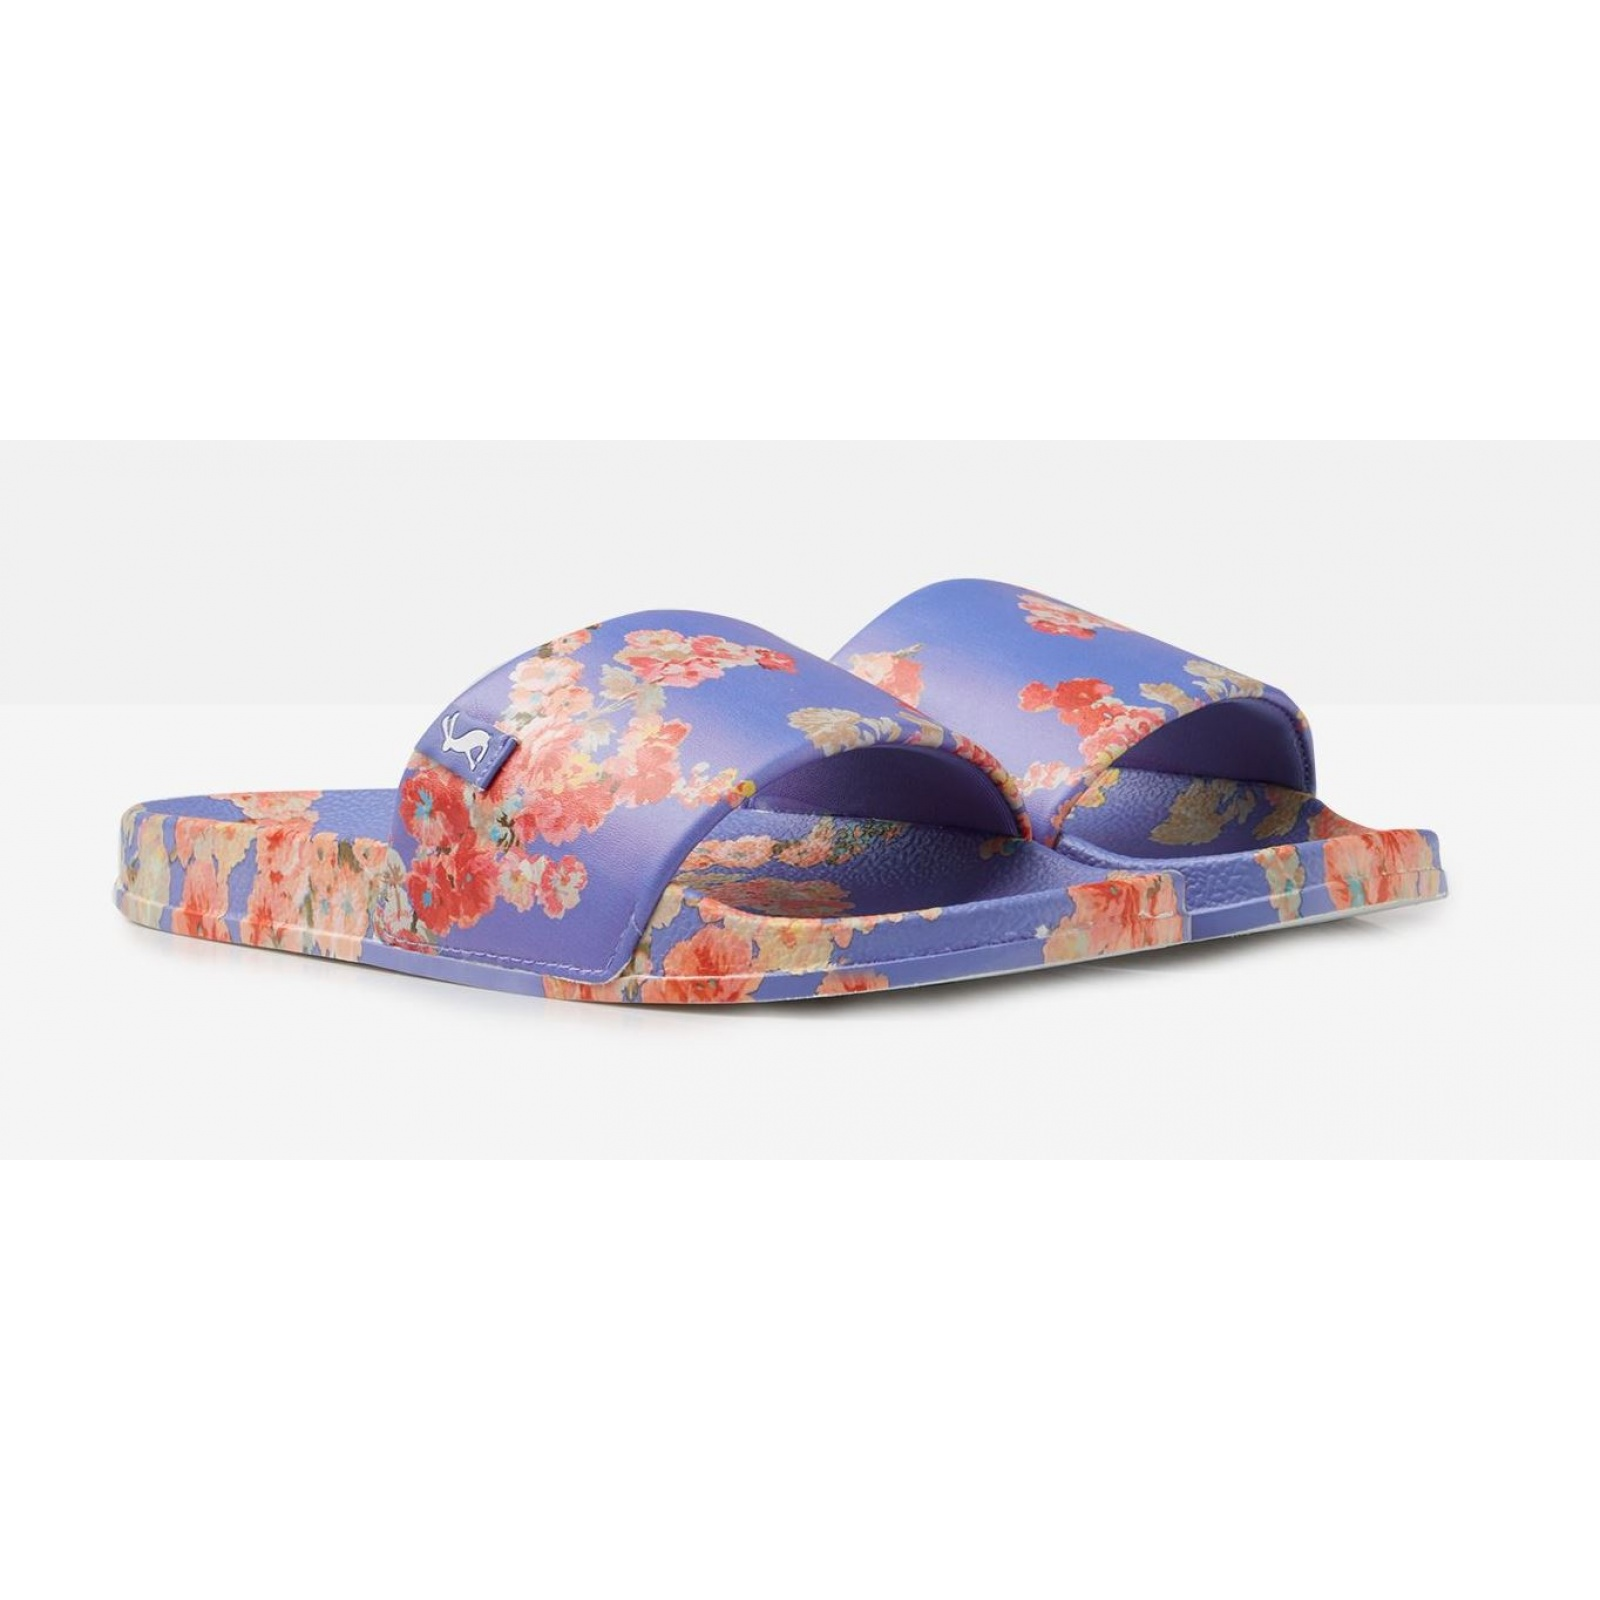 Joules-Poolside-PU-Sliders-Beach-Holiday-Shoes-SS19 miniature 3